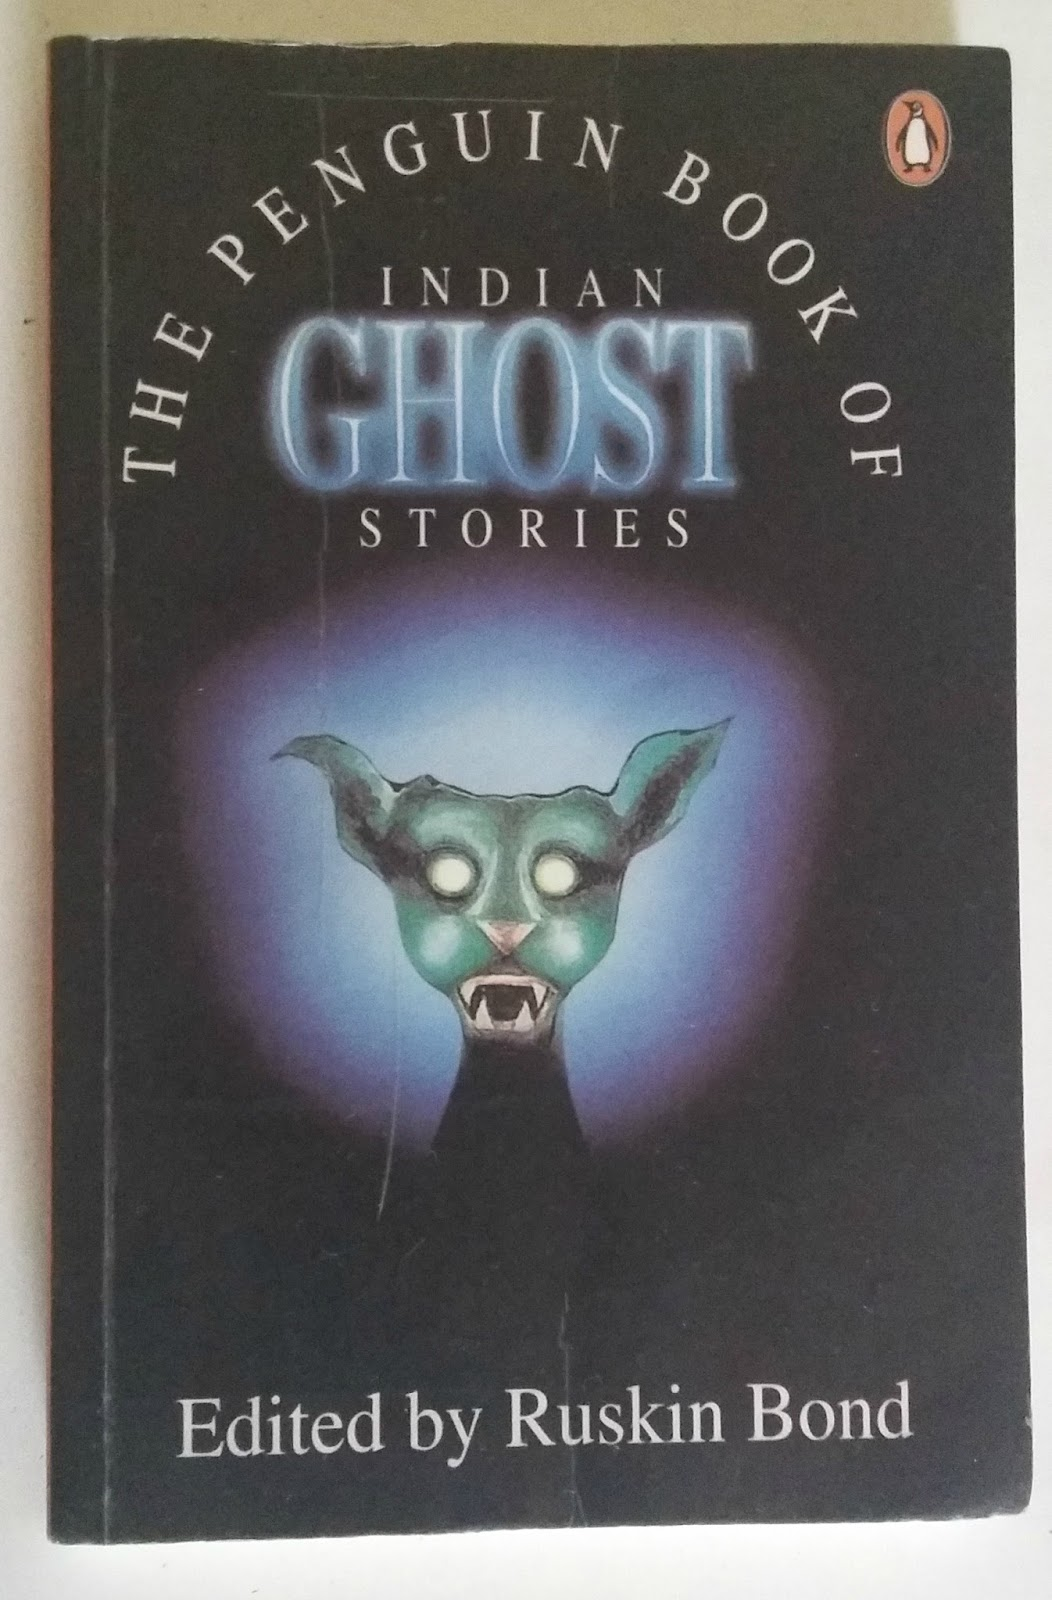 Books about ghost